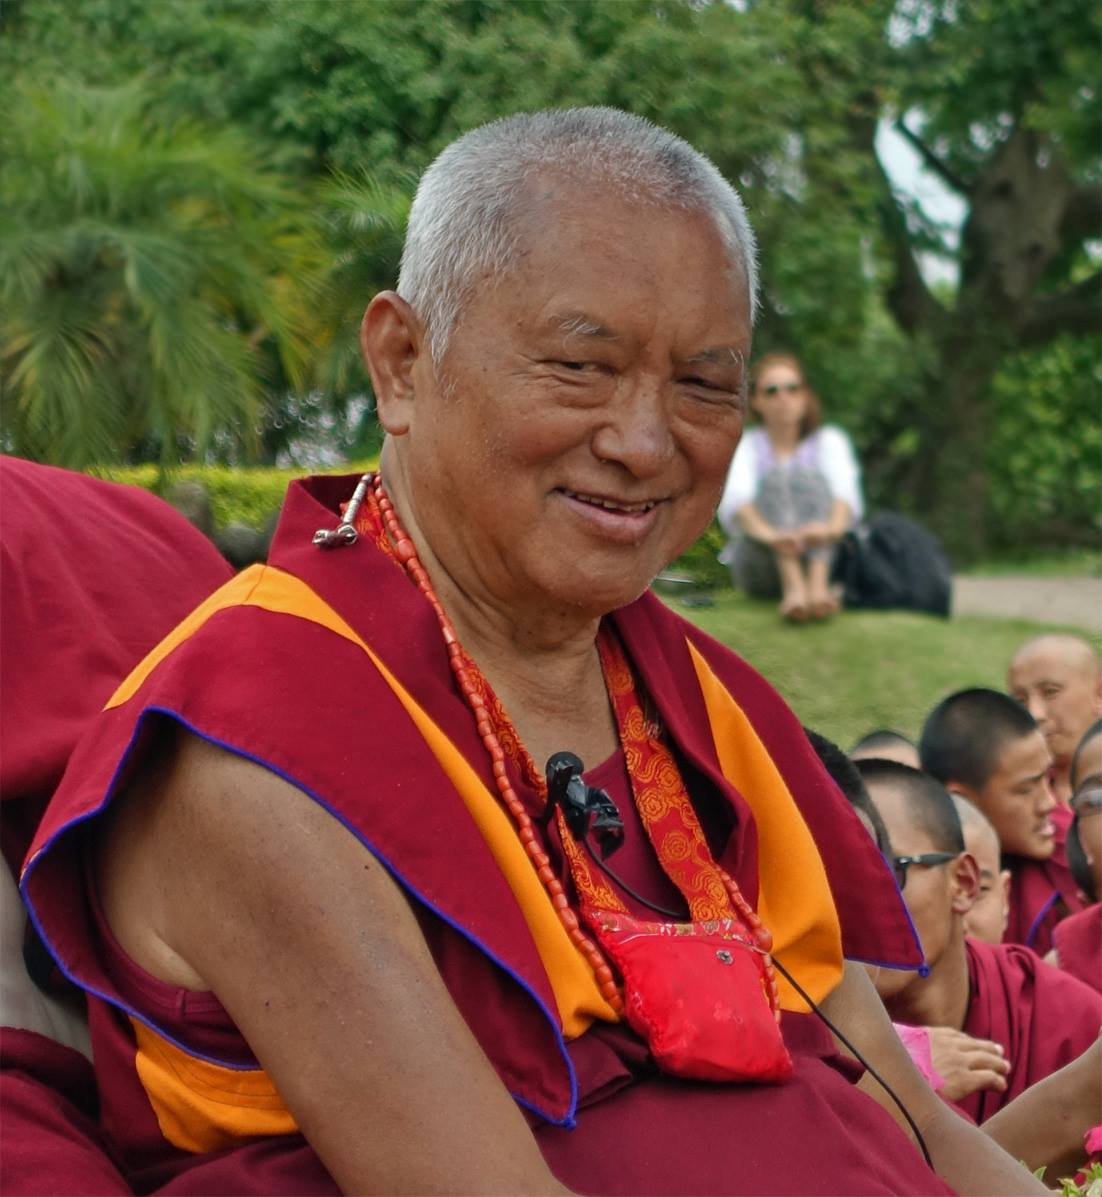 Lama Zopa Rinpoche in garden at Kopan Monastery on the day after the earthquake, Nepal, April 25, 2015.